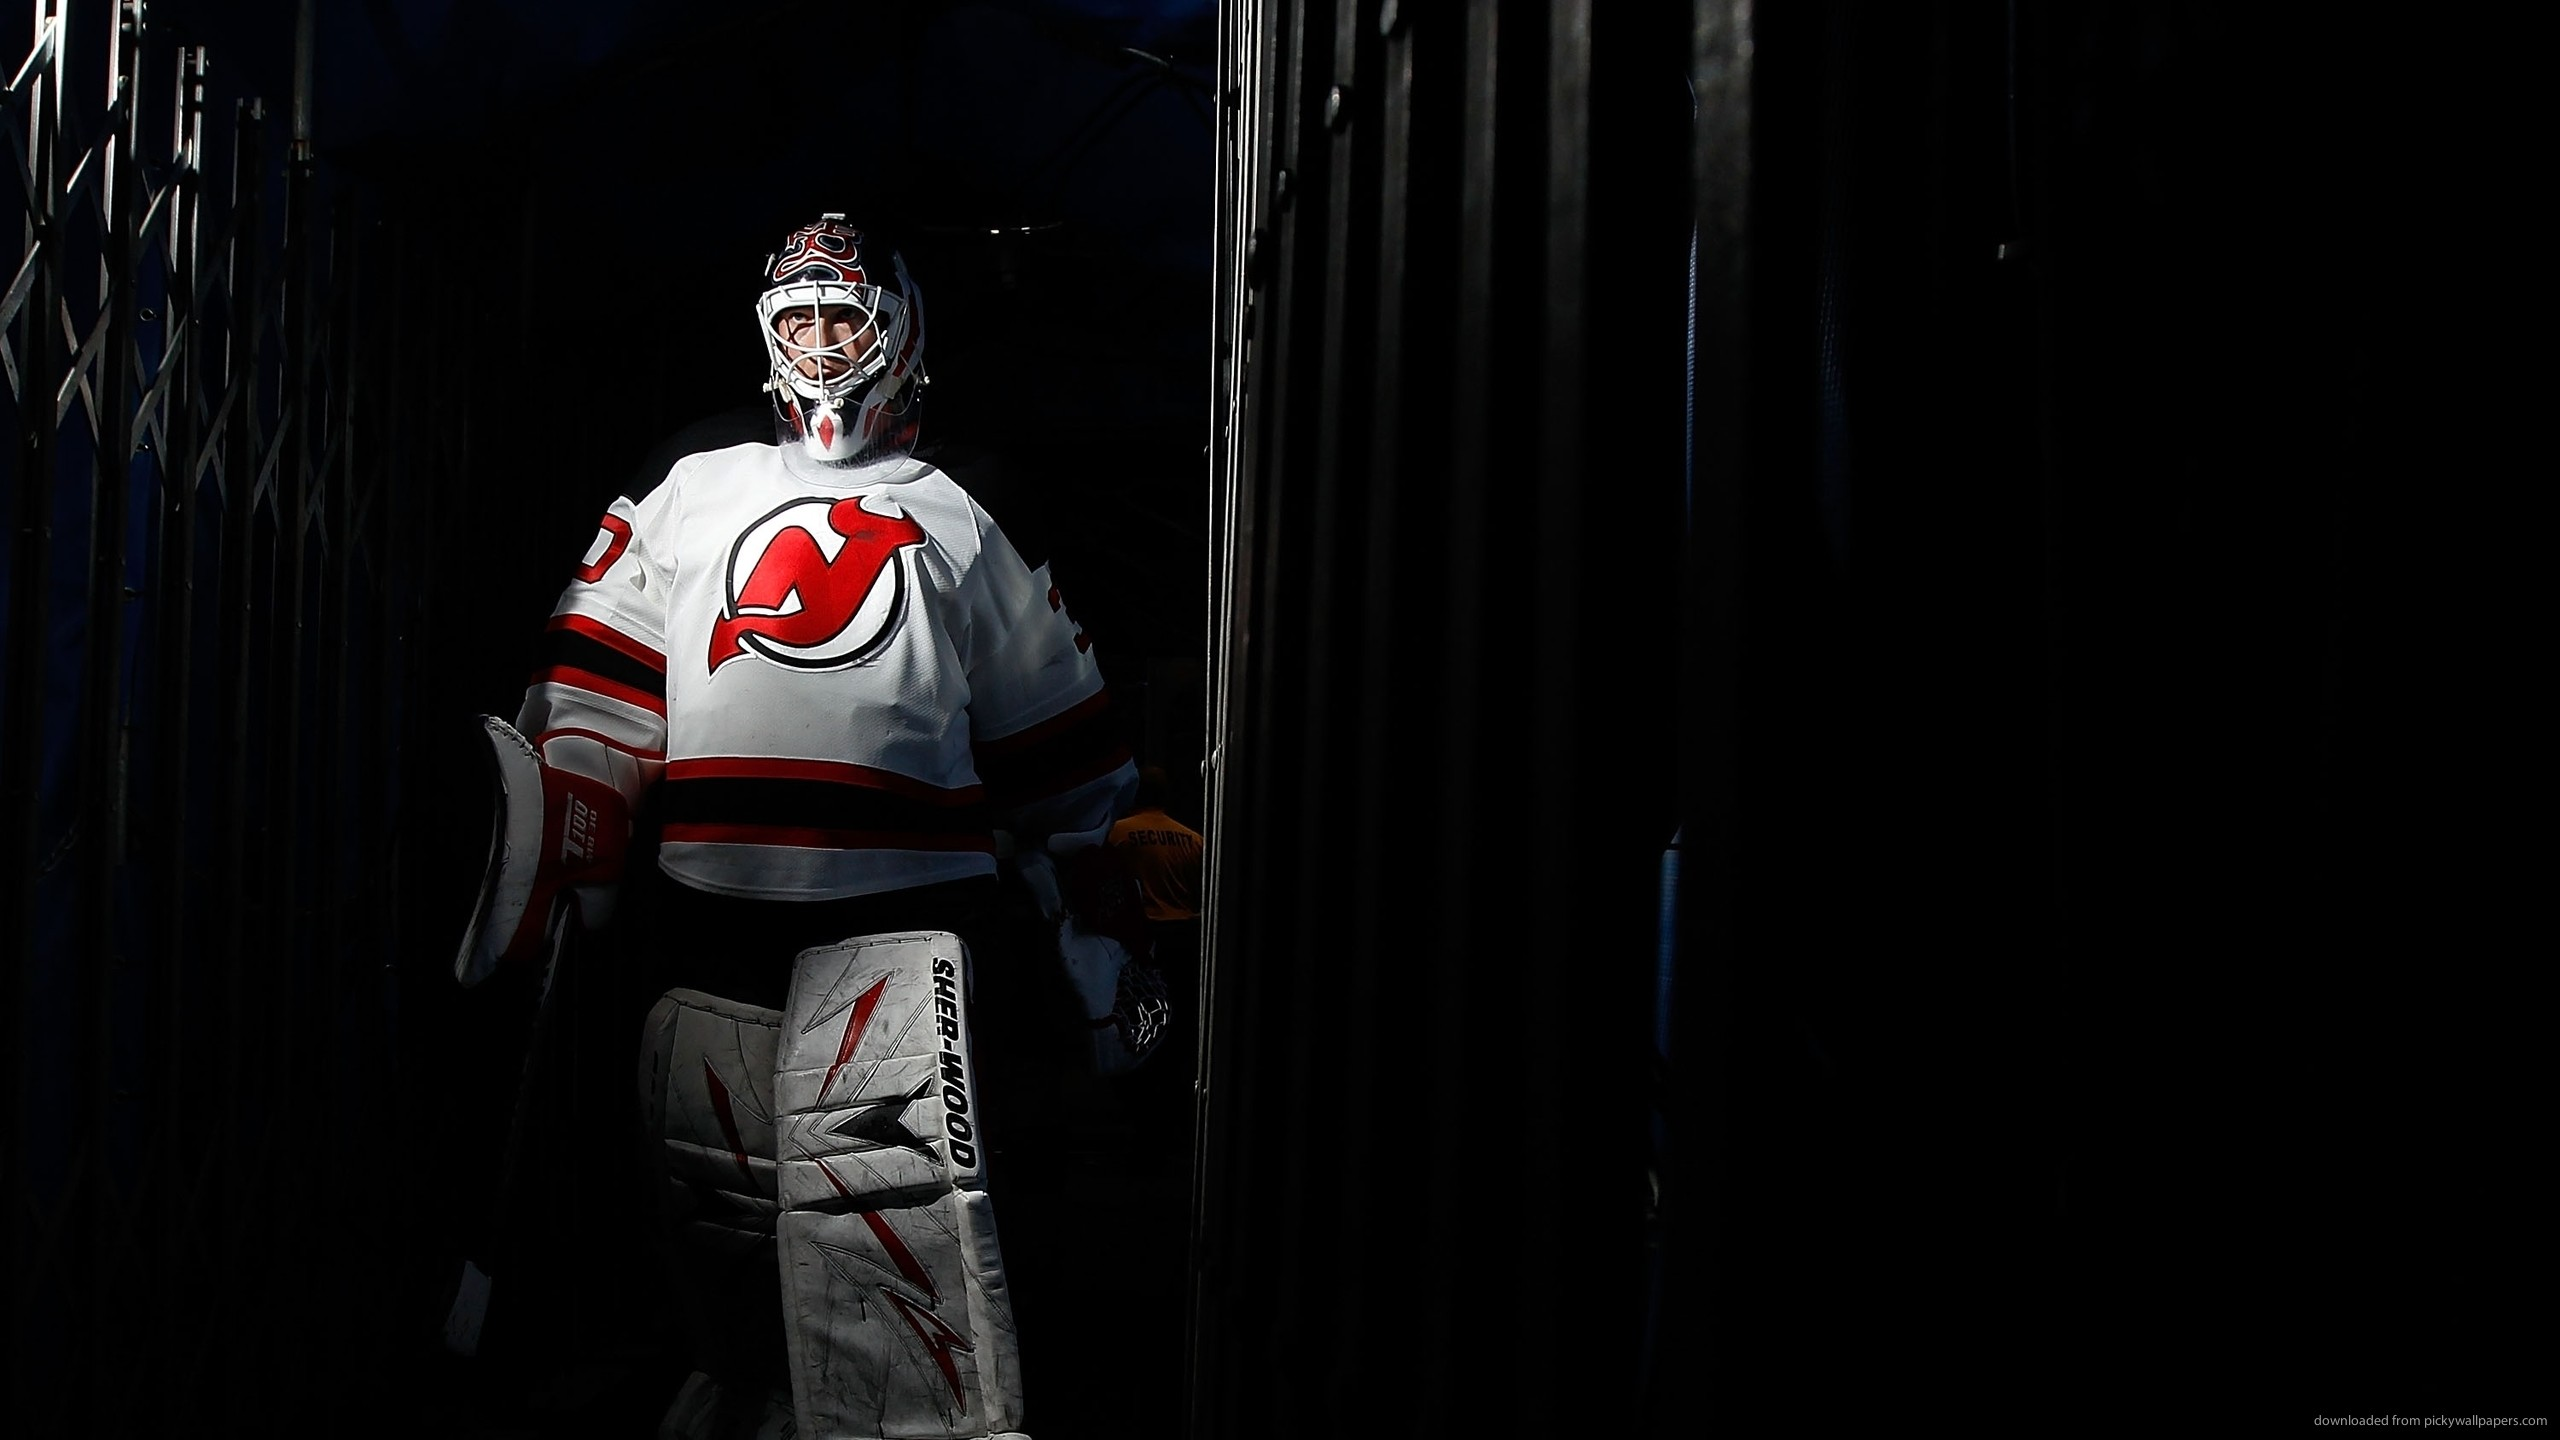 2560x1440 - New Jersey Devils Wallpapers 4